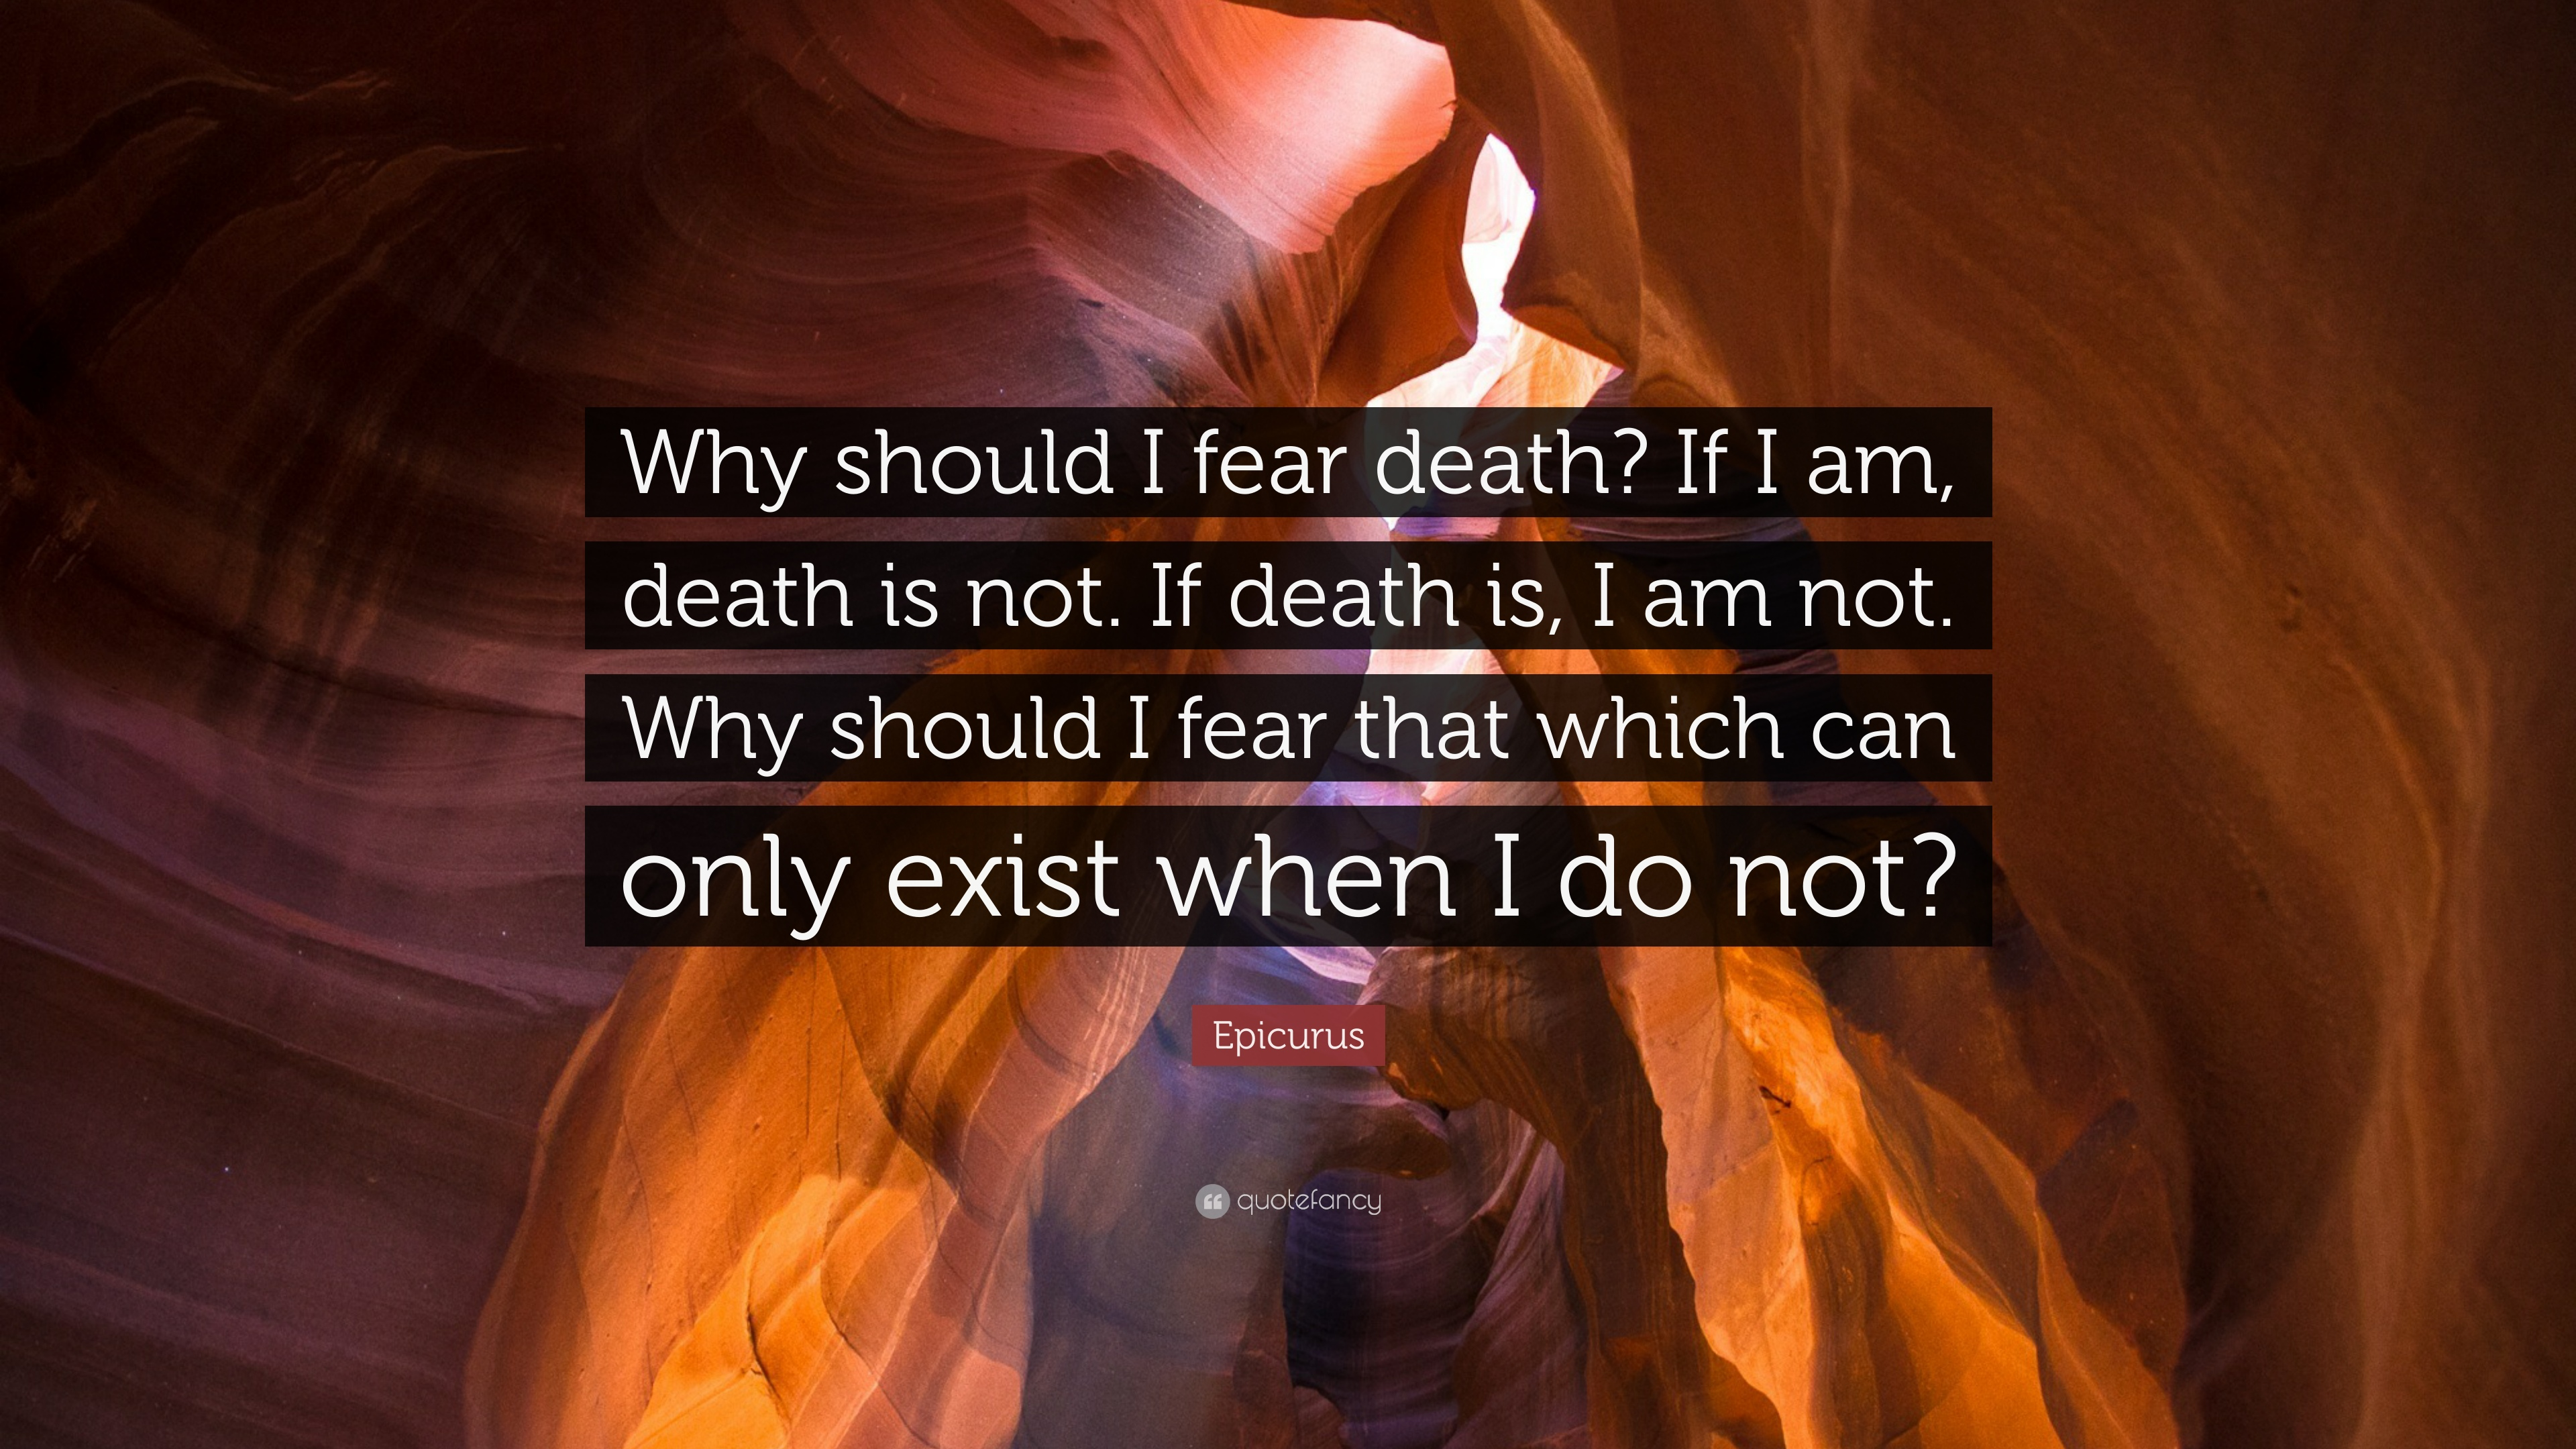 Socrates, Epicurus and the Fear of Death